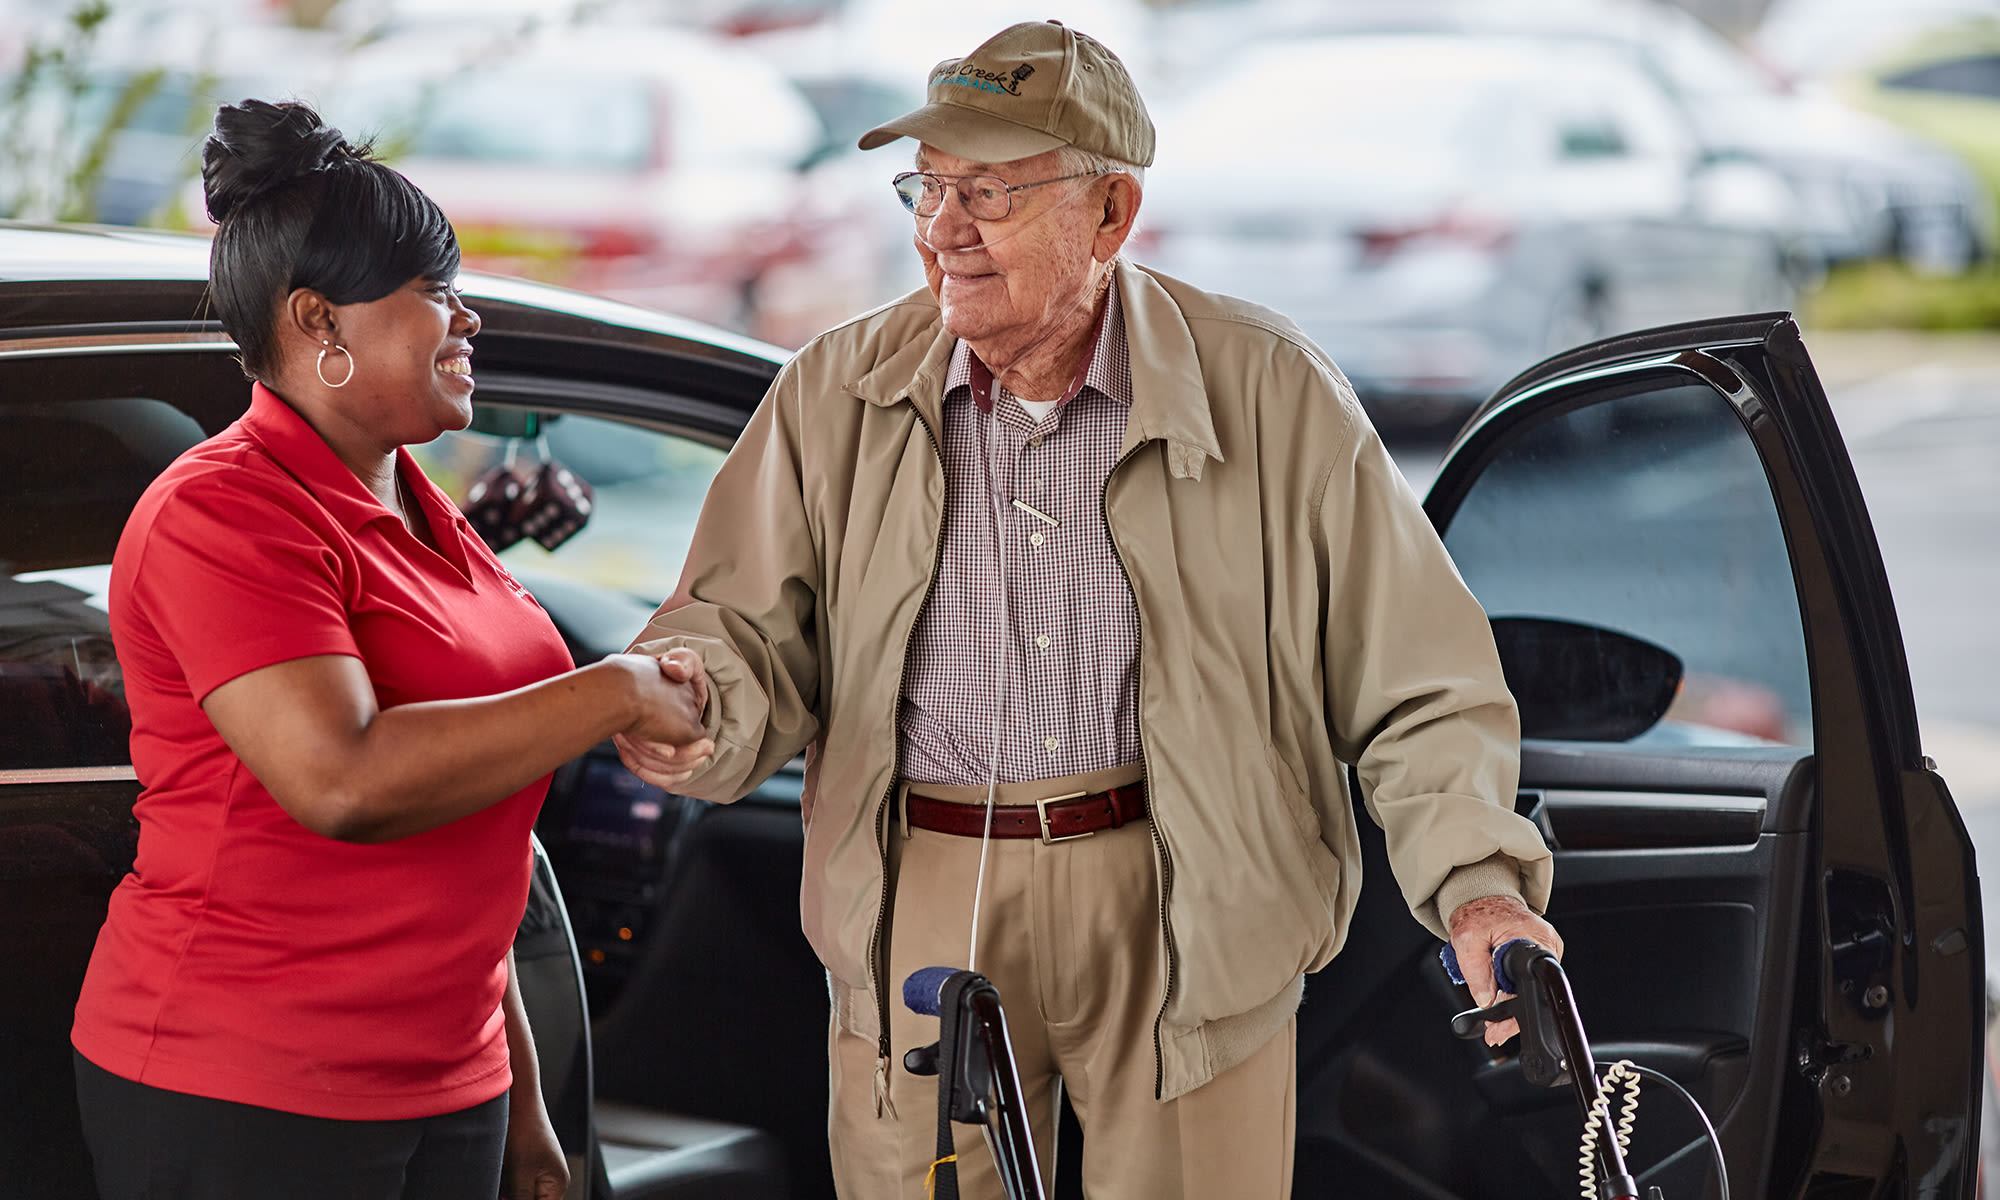 Rhythms Home Care services include transportation